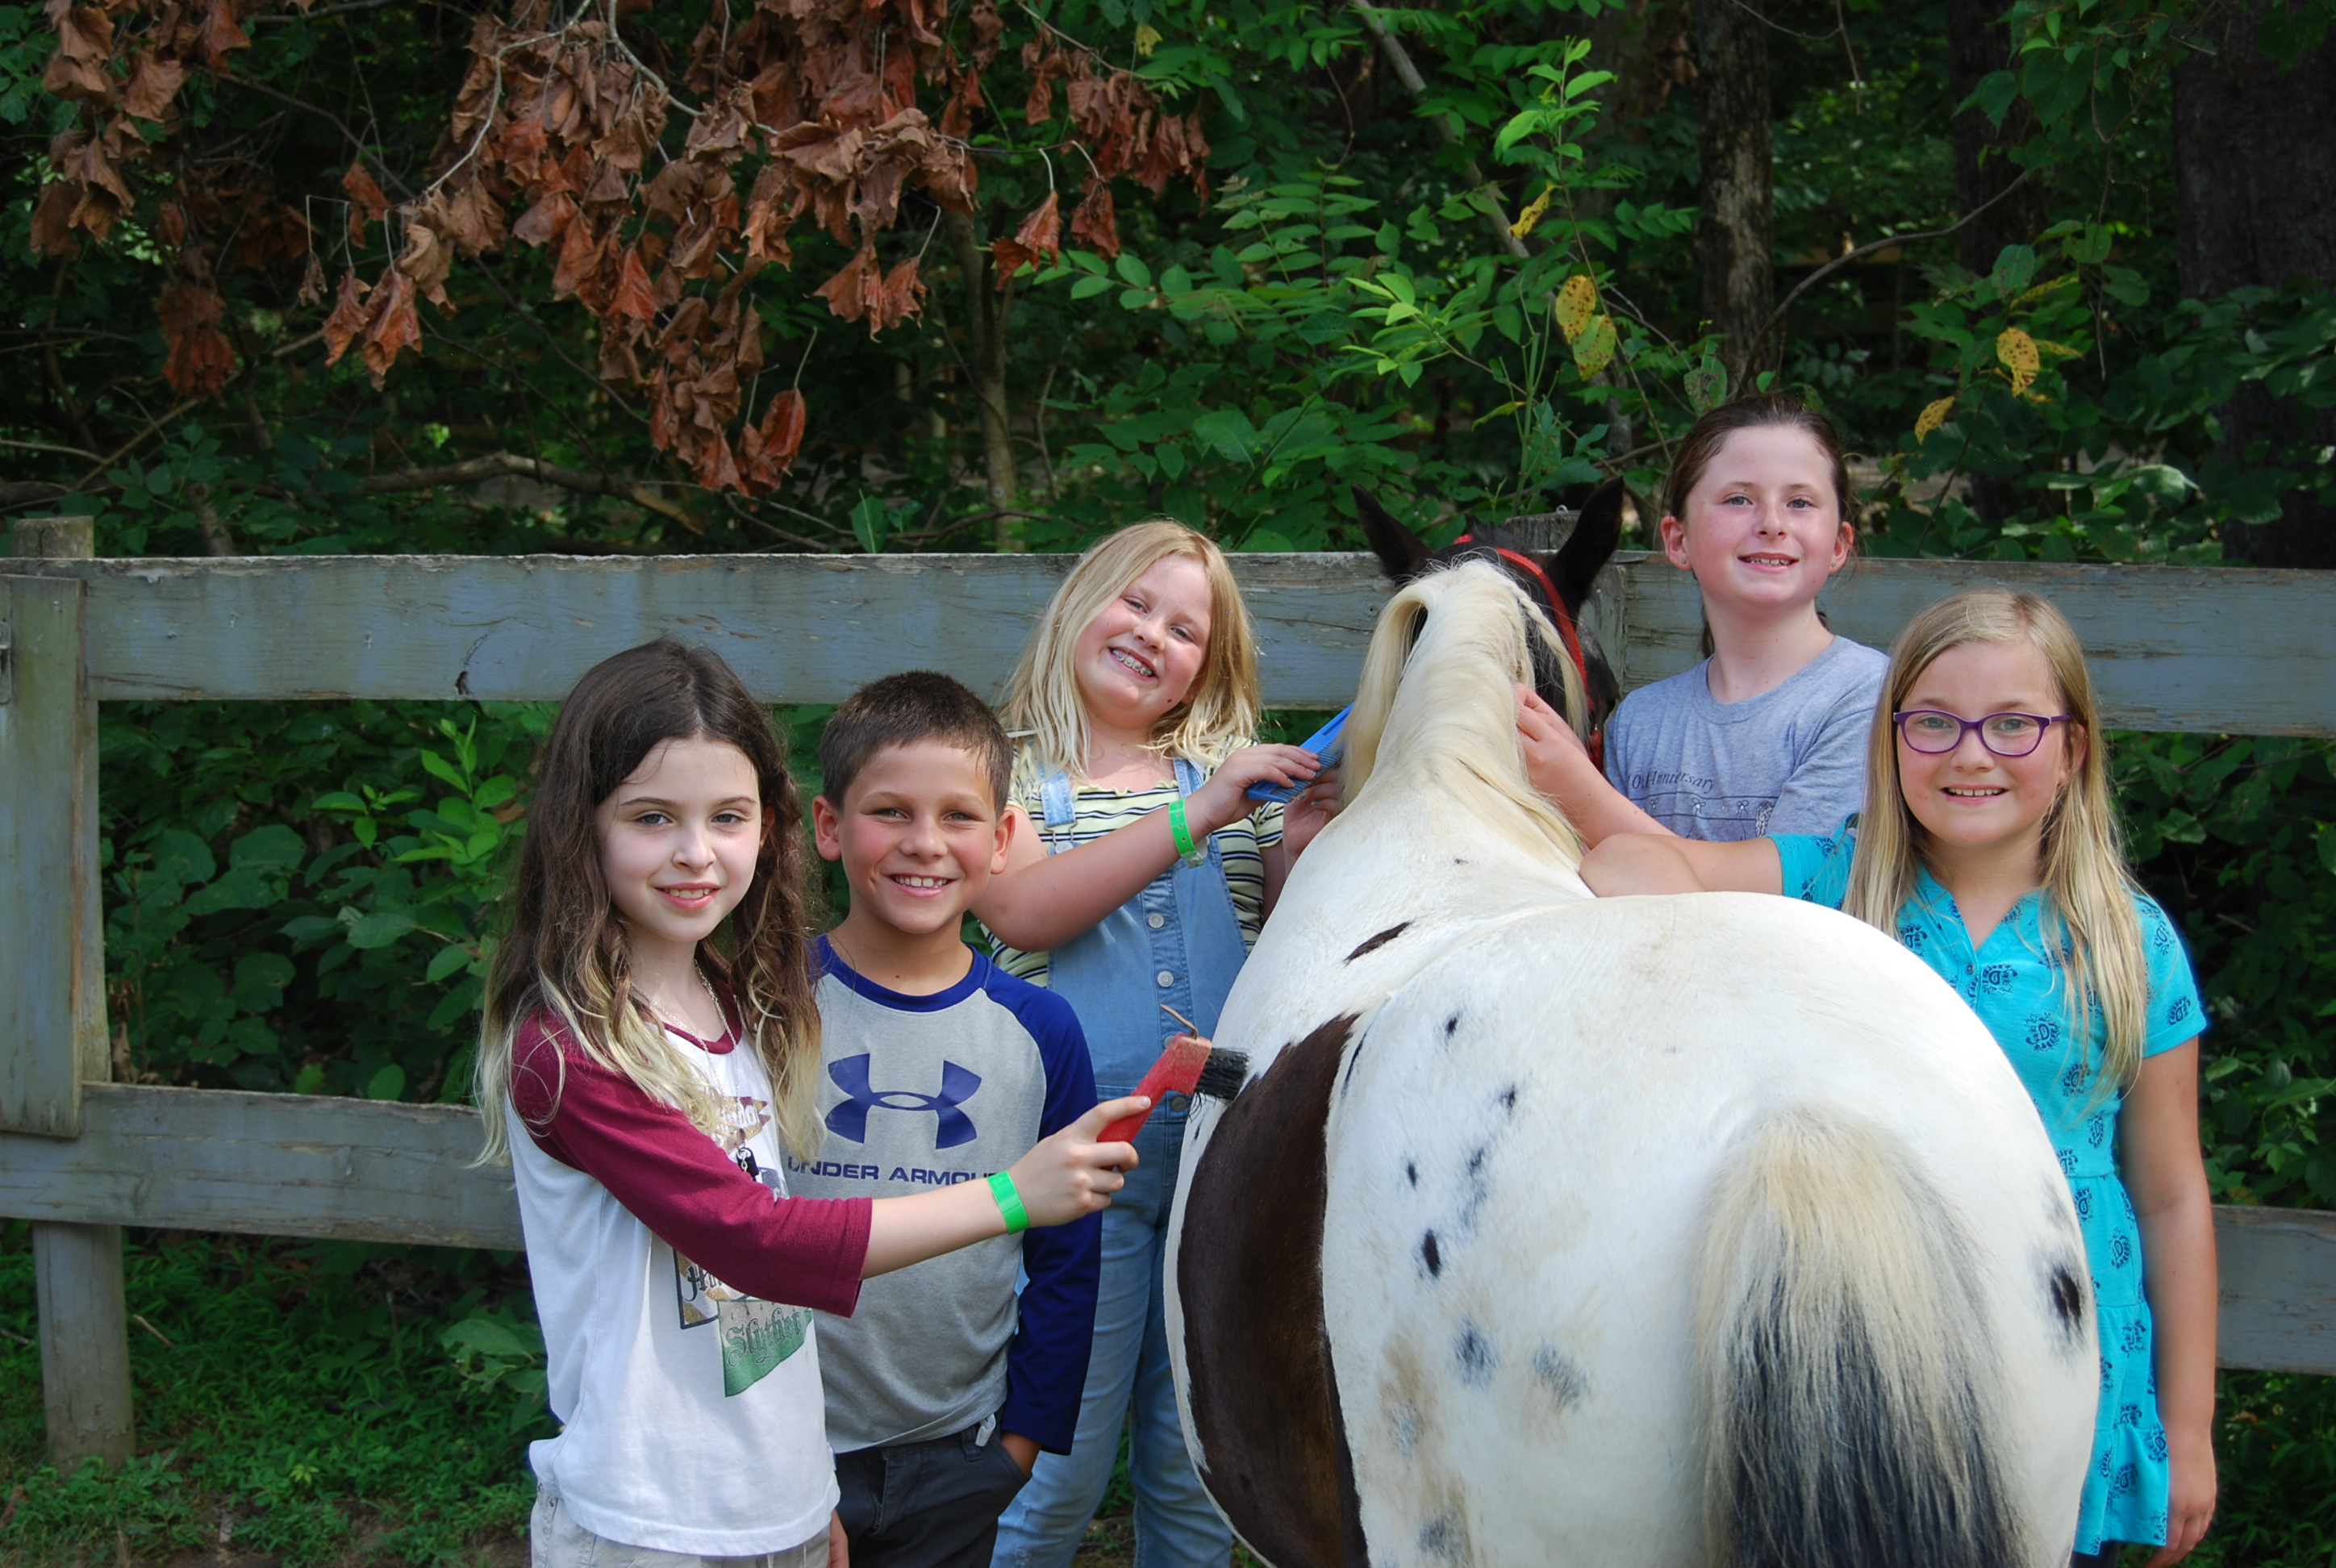 5 girls brushing a small painted horse